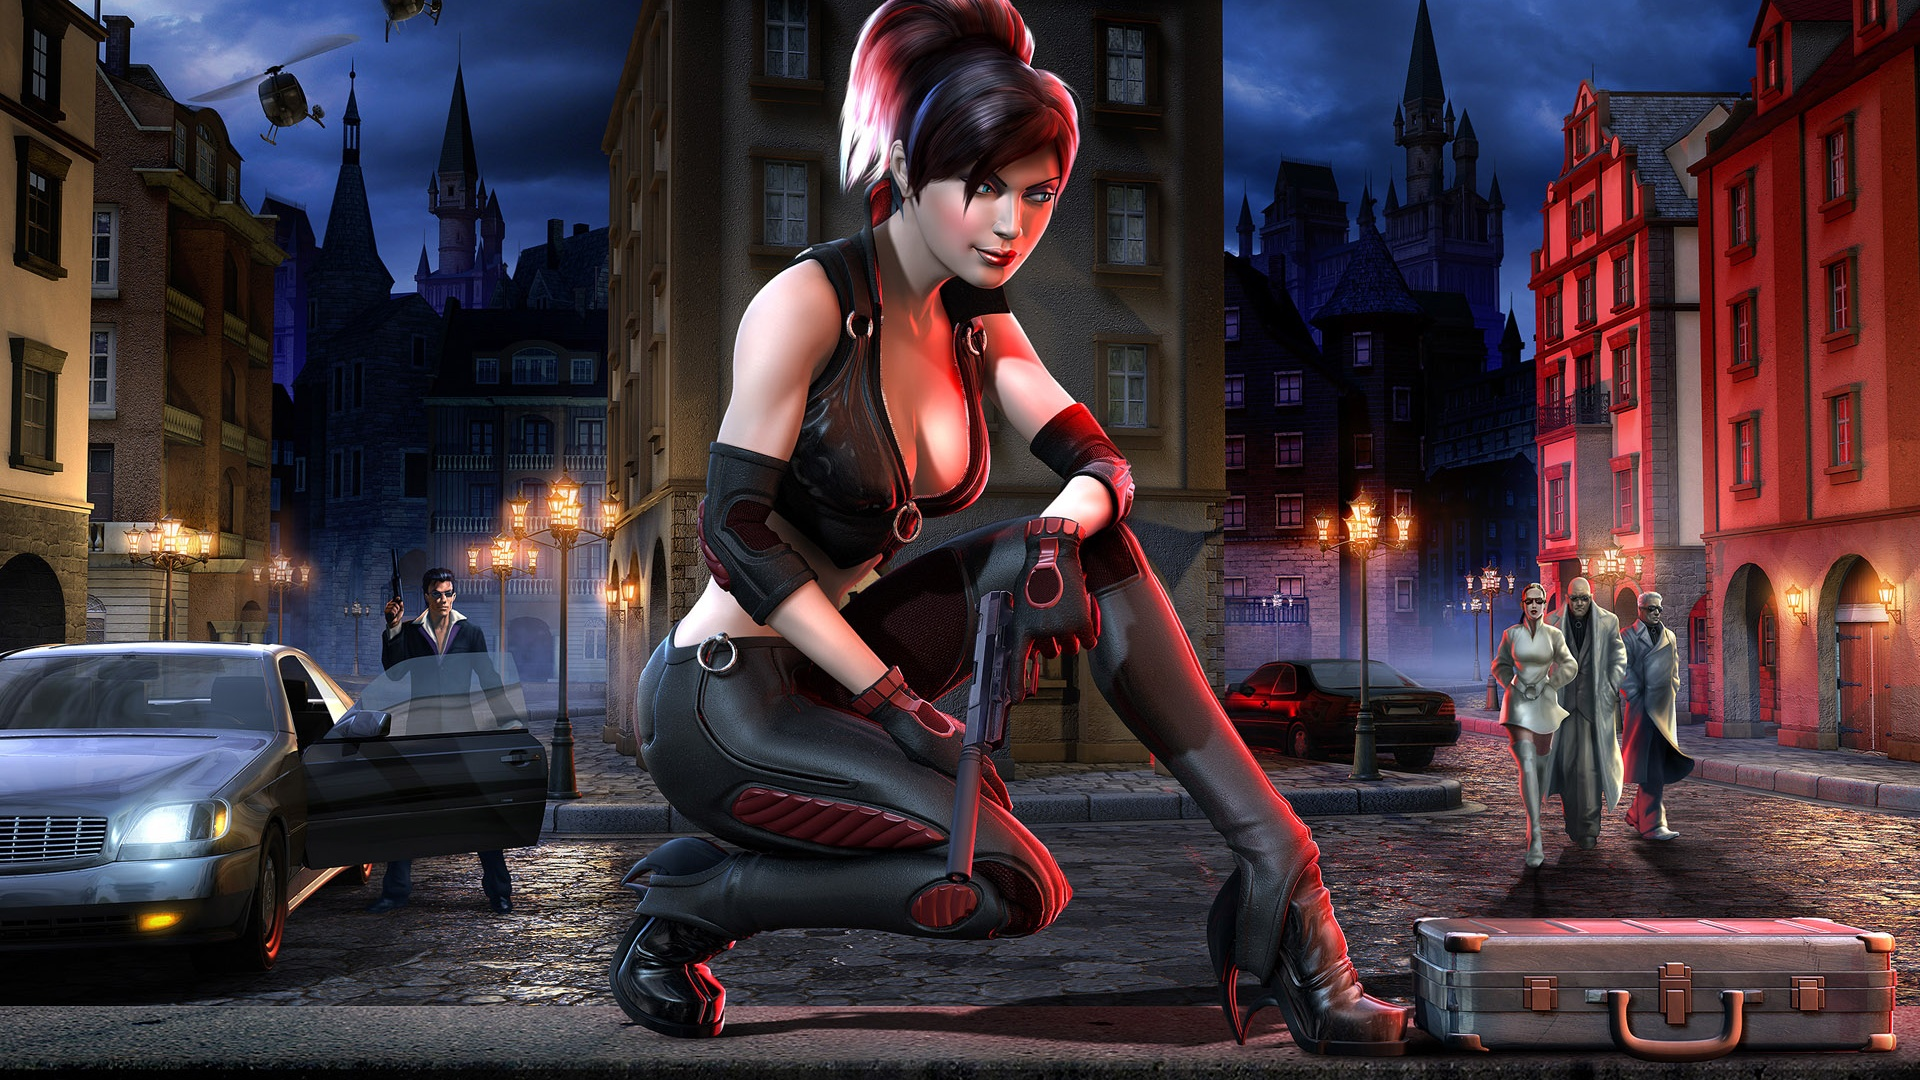 Wallpaper Beautiful Fantasy Girl Robbers 1920x1200 Hd Picture Image